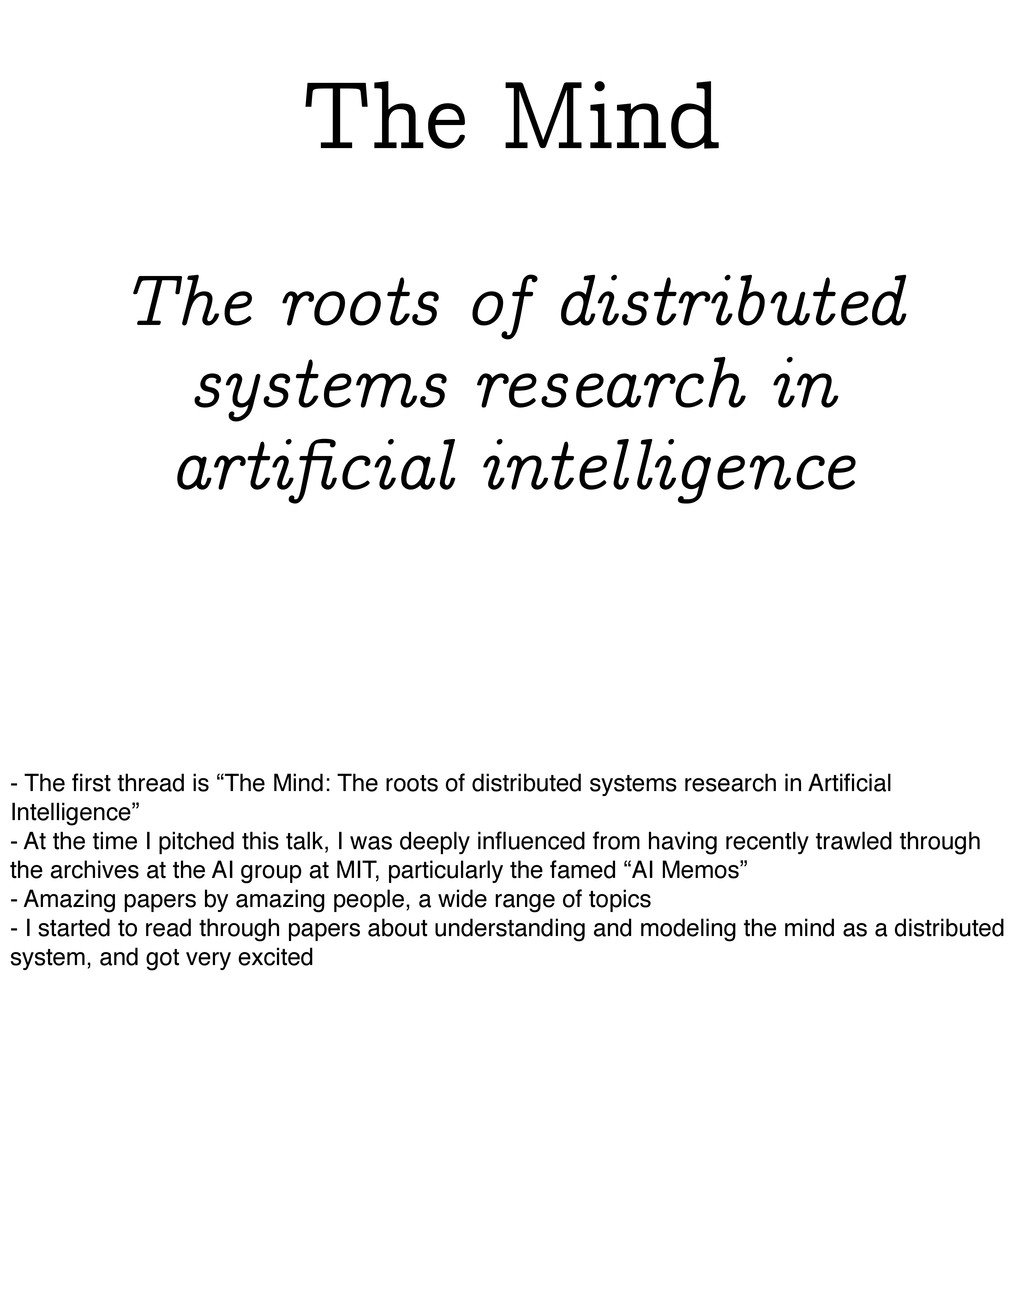 The roots of distributed systems research in ar...